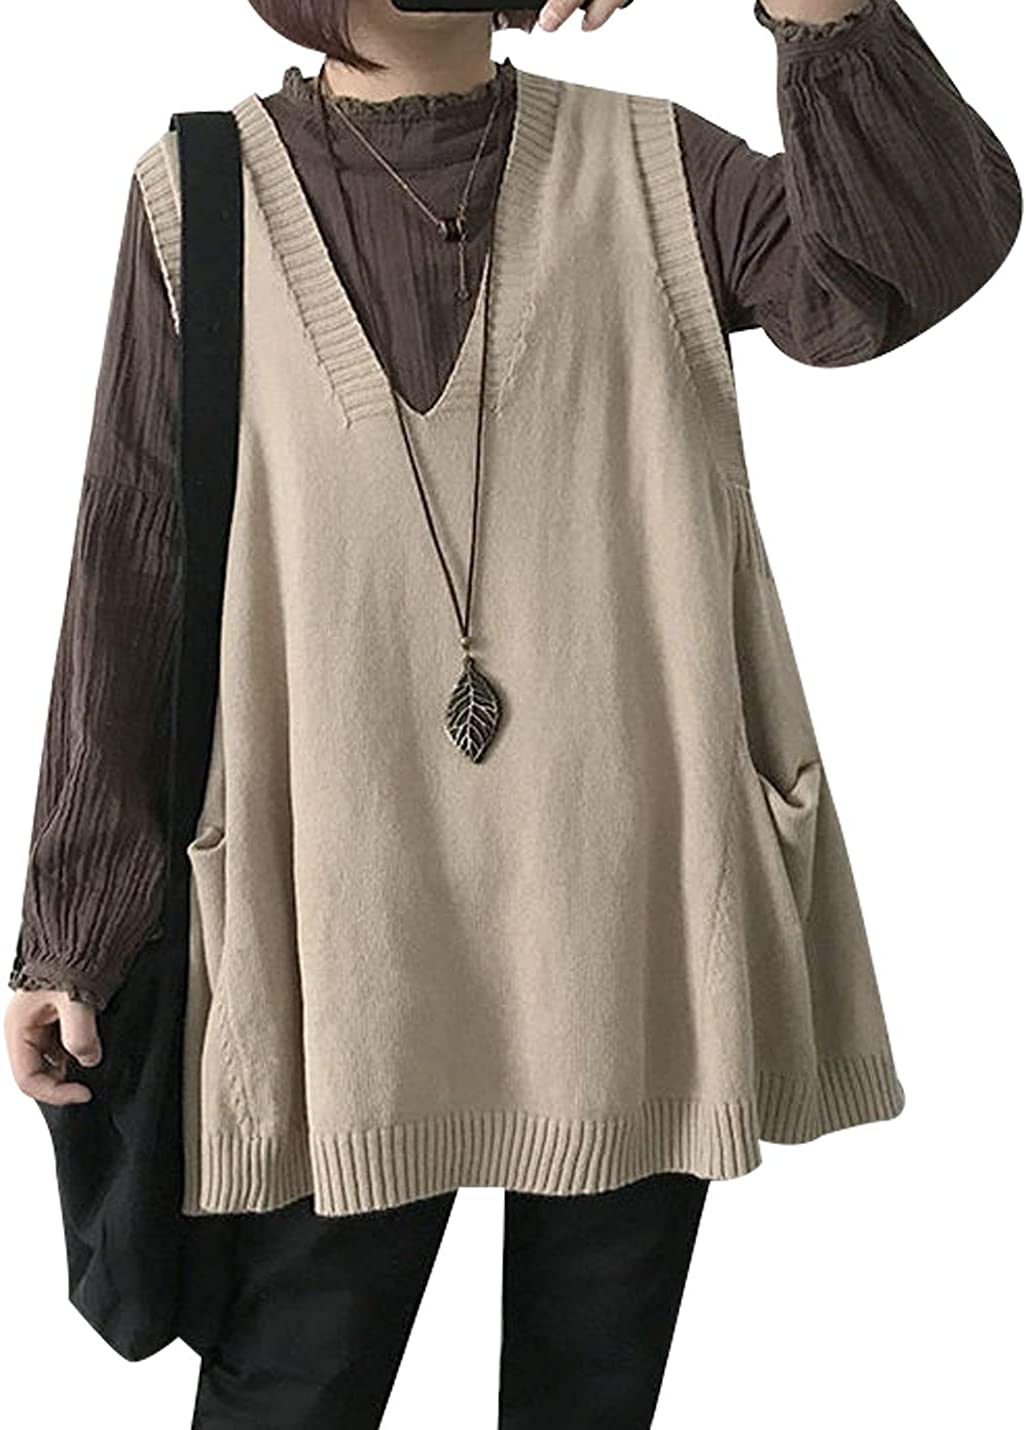 Lentta Womens Casual Baggy V Neck Pocket Sleeveless Tunic Knitted Vest Sweater Top